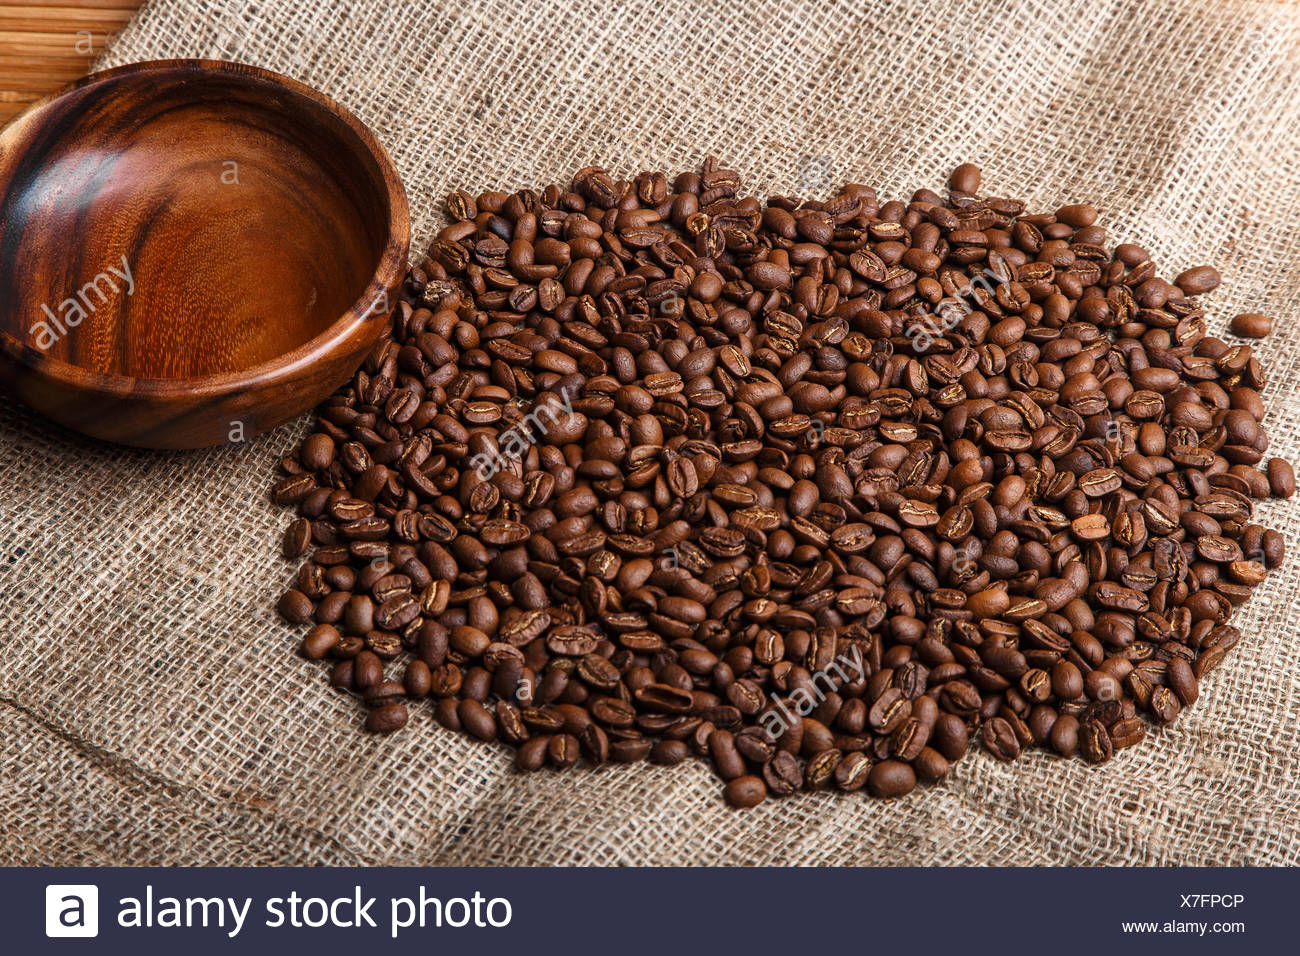 Brown coffee beans on the bag with empty wooden di - Stock Image